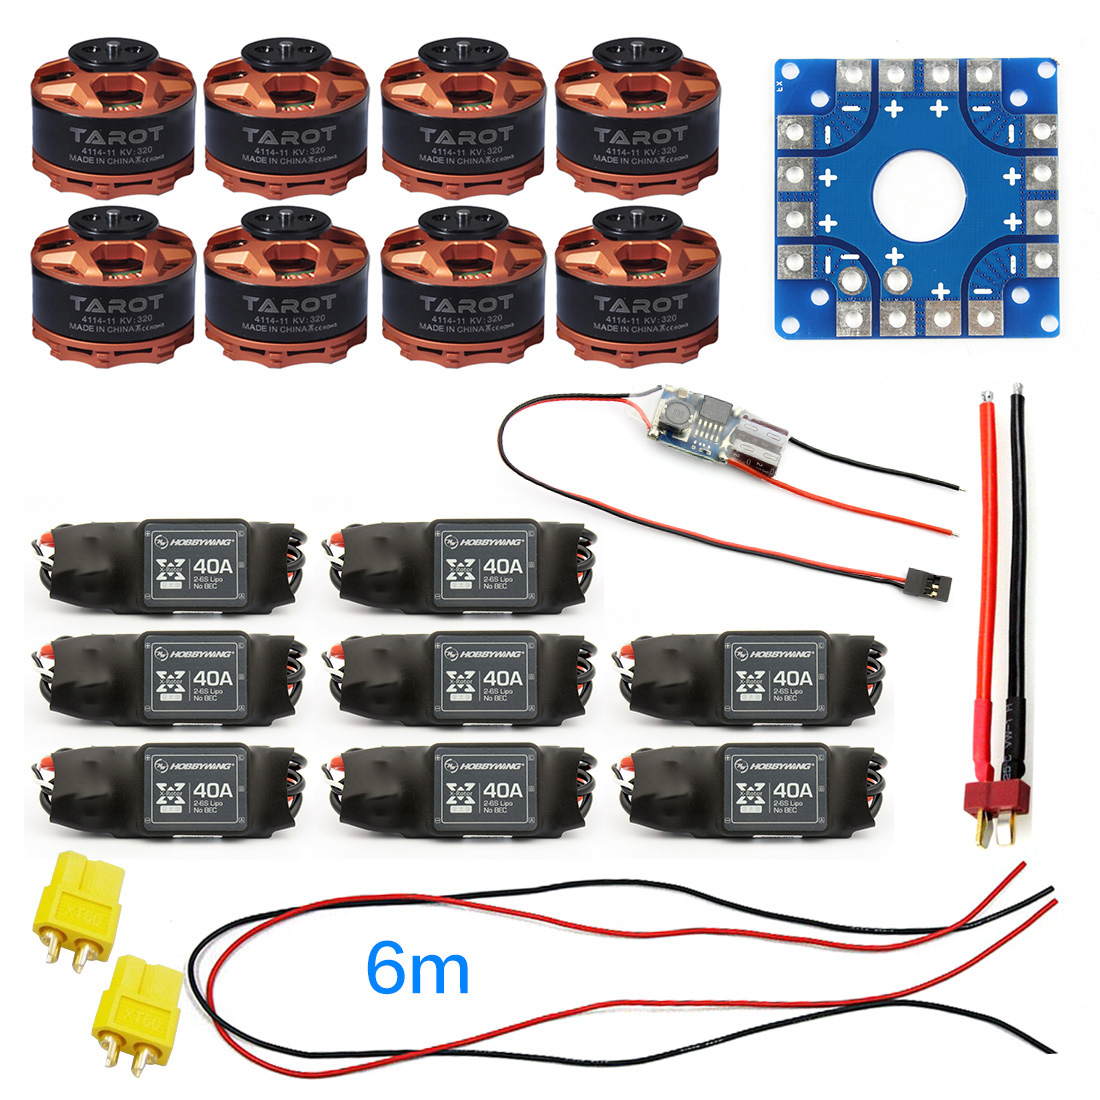 F04997-G JMT Assembled Kit 40A ESC Controller Tarot 320KV Motor Connection Board Wire for 8-axle Drone Multi Rotor Hexacopter image